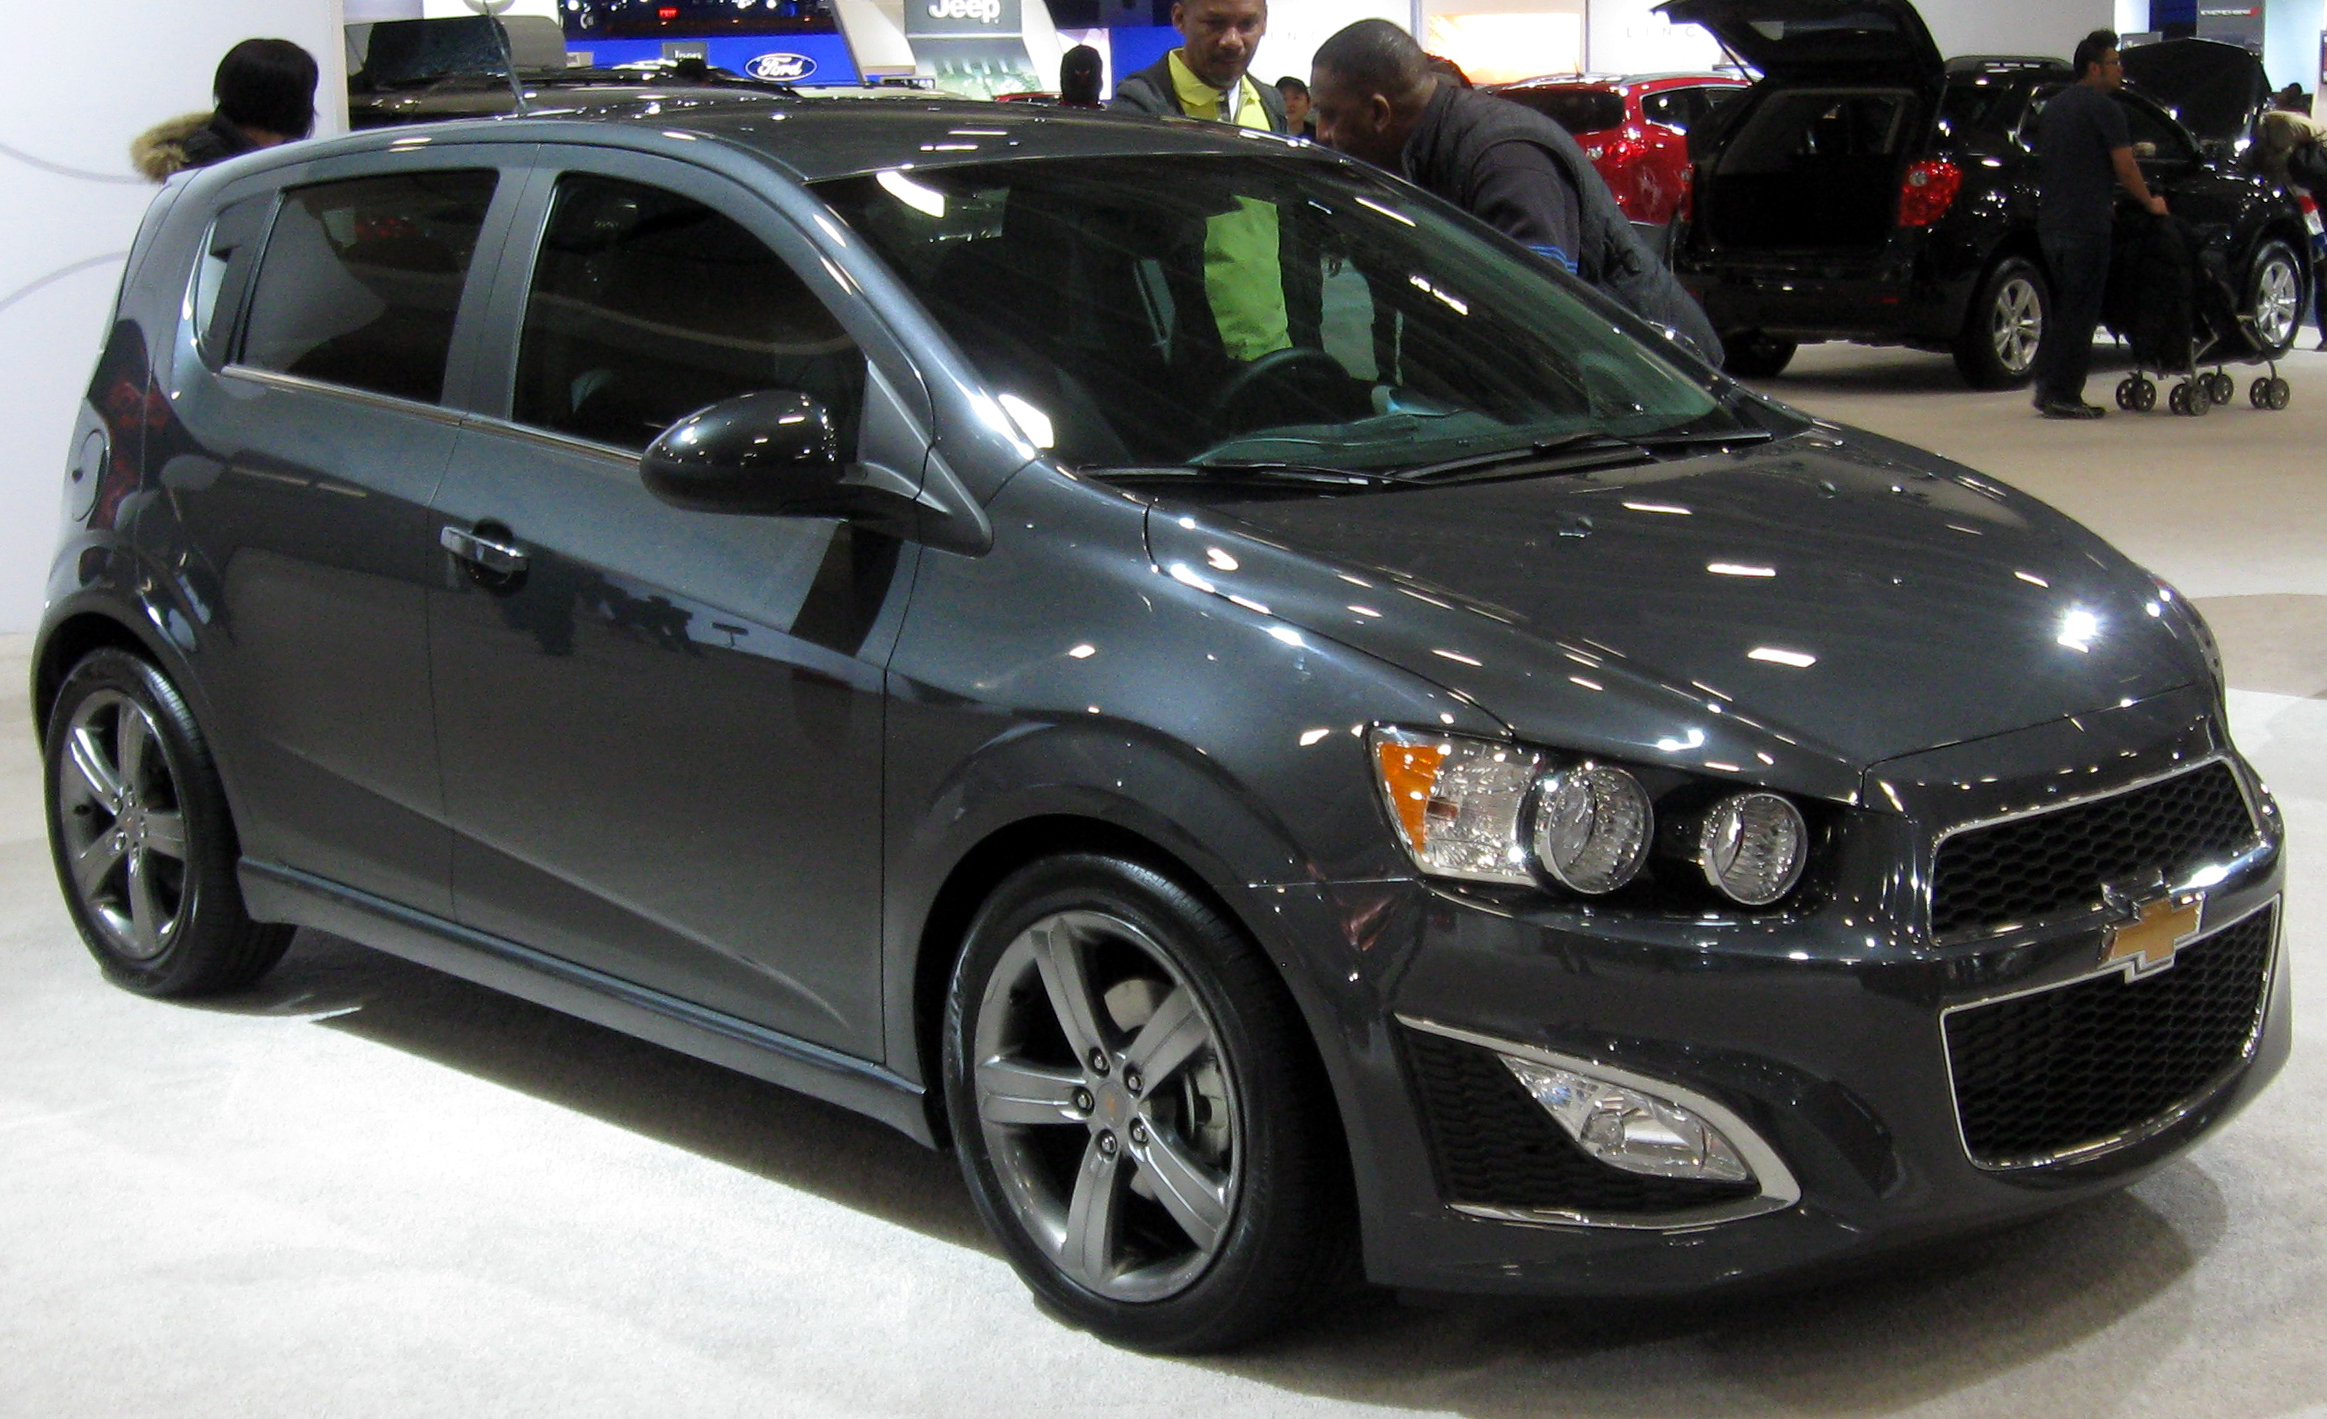 file 2013 chevrolet sonic rs 2012 dc jpg wikipedia. Black Bedroom Furniture Sets. Home Design Ideas